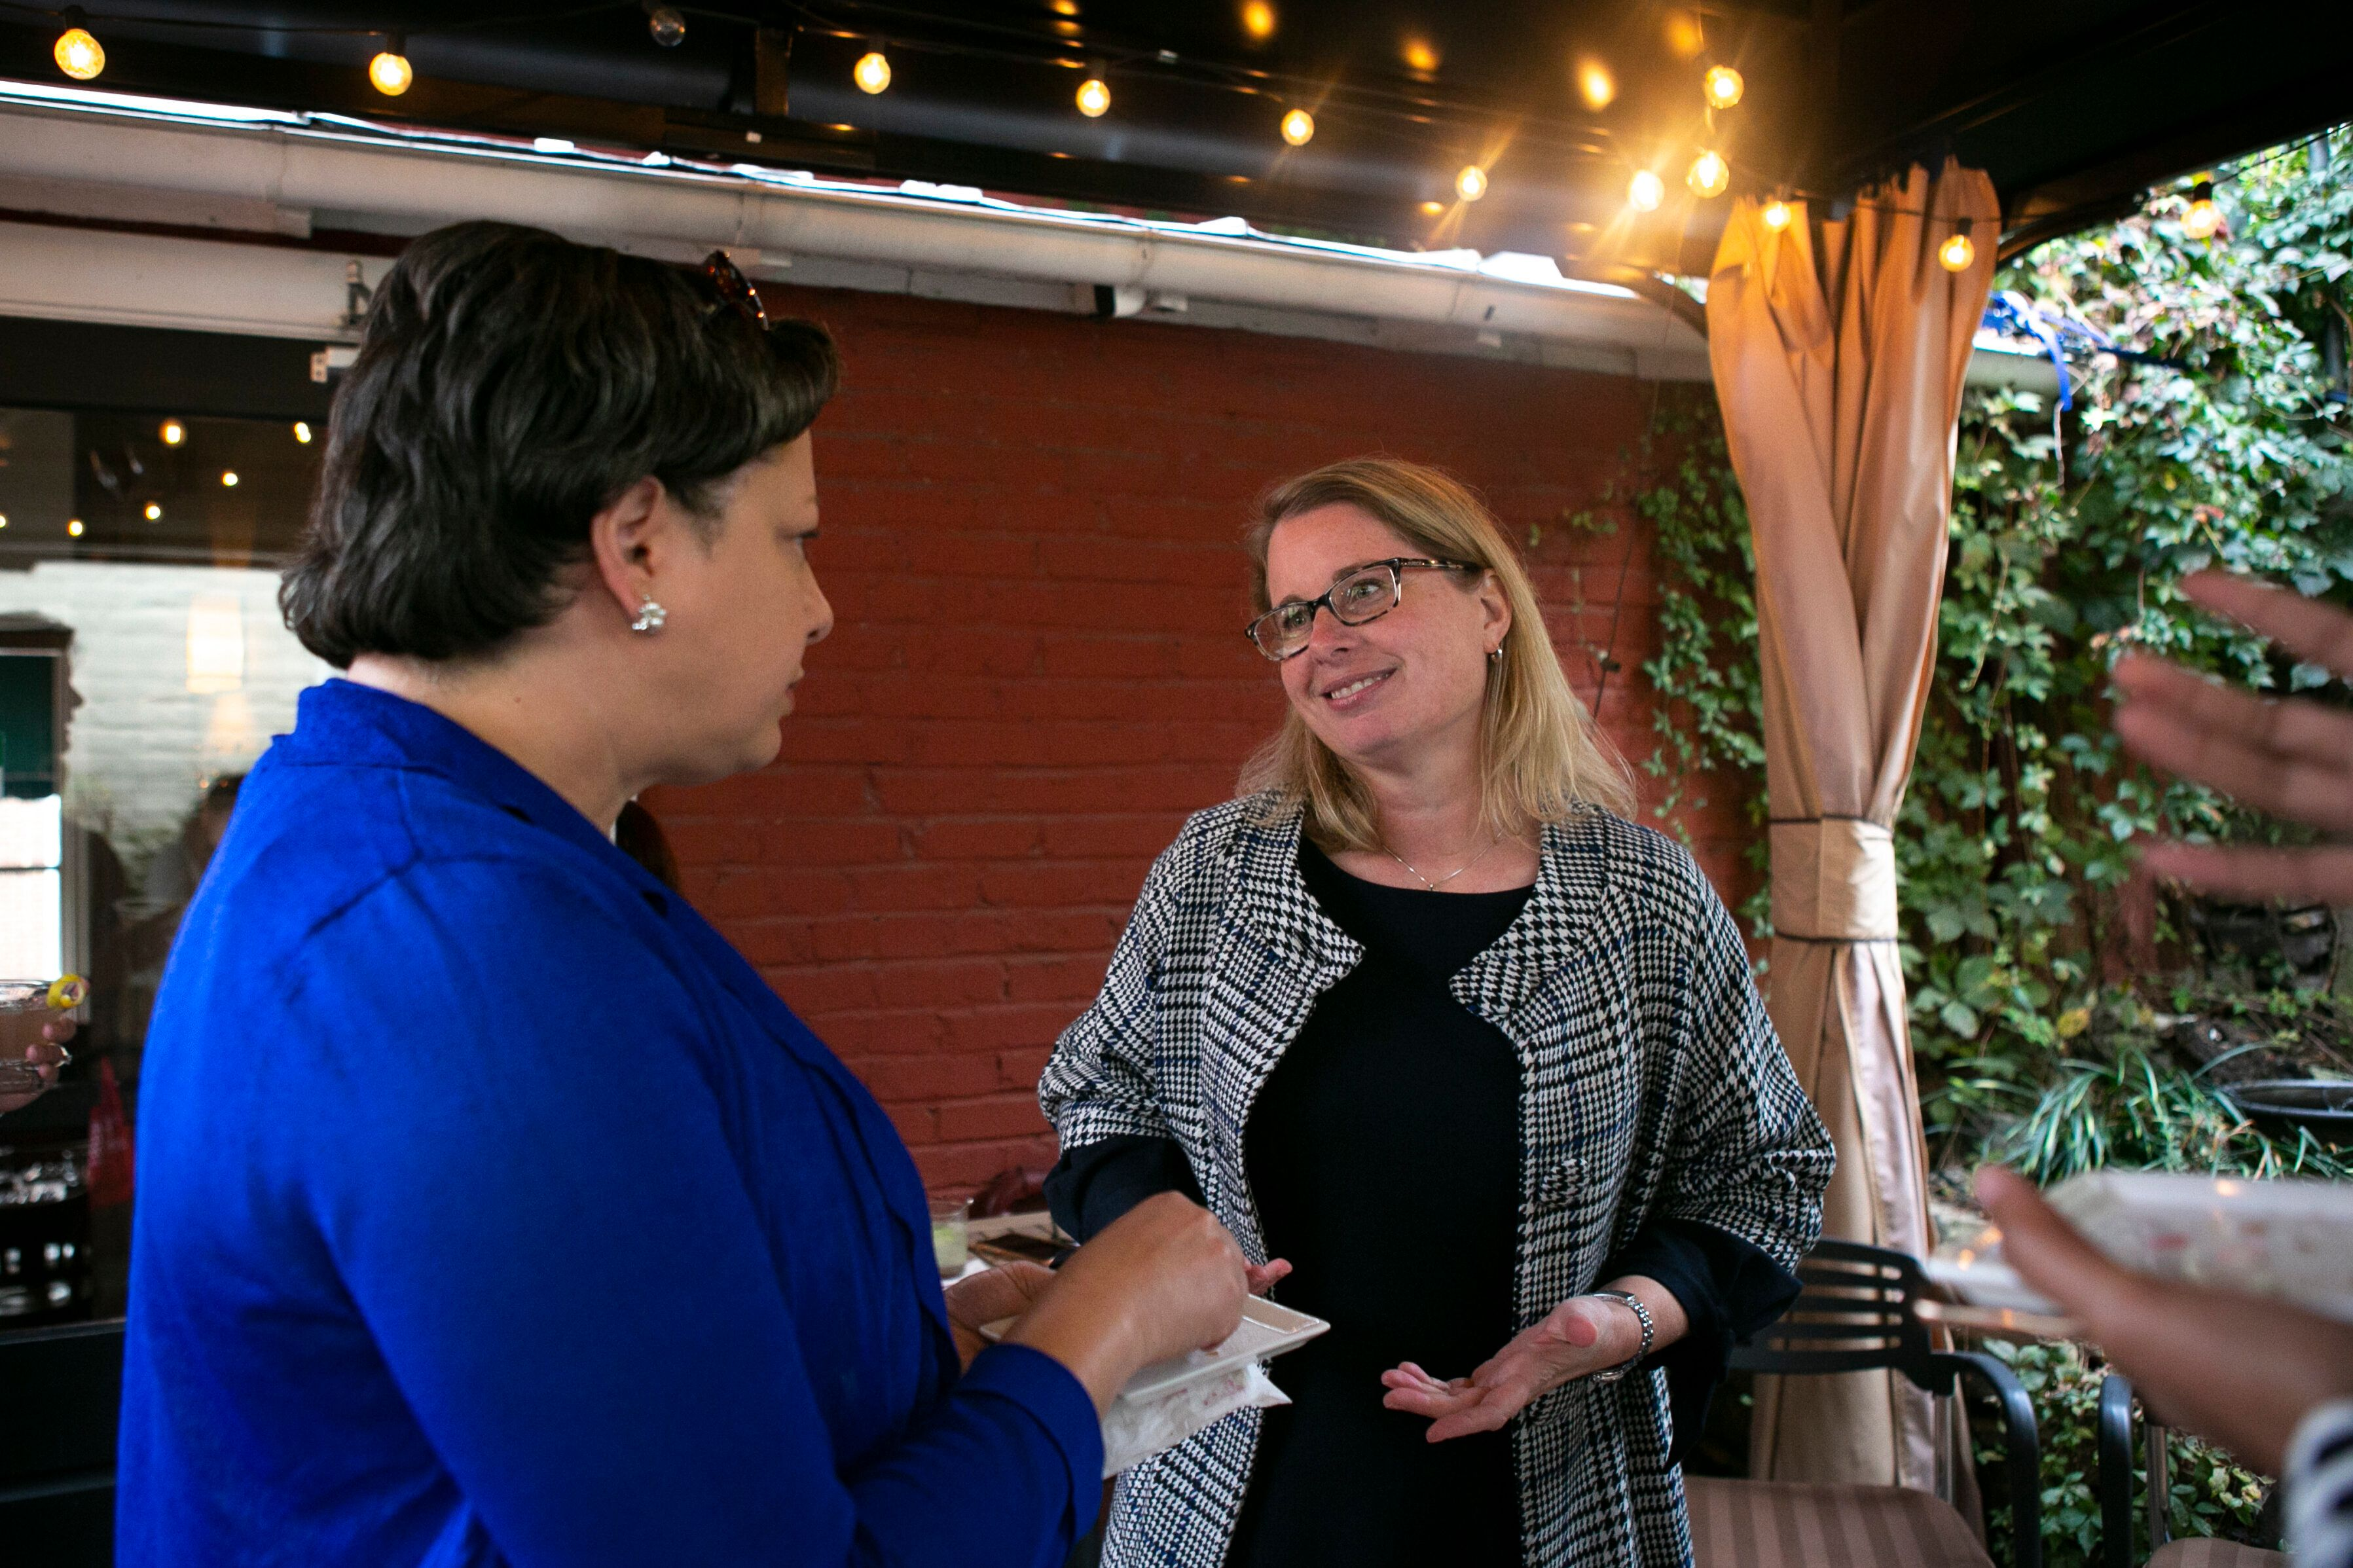 Virginia state Sen. Jennifer McClellan (D), left, campaigns for a state House candidate in 2019. McClellan has represented th